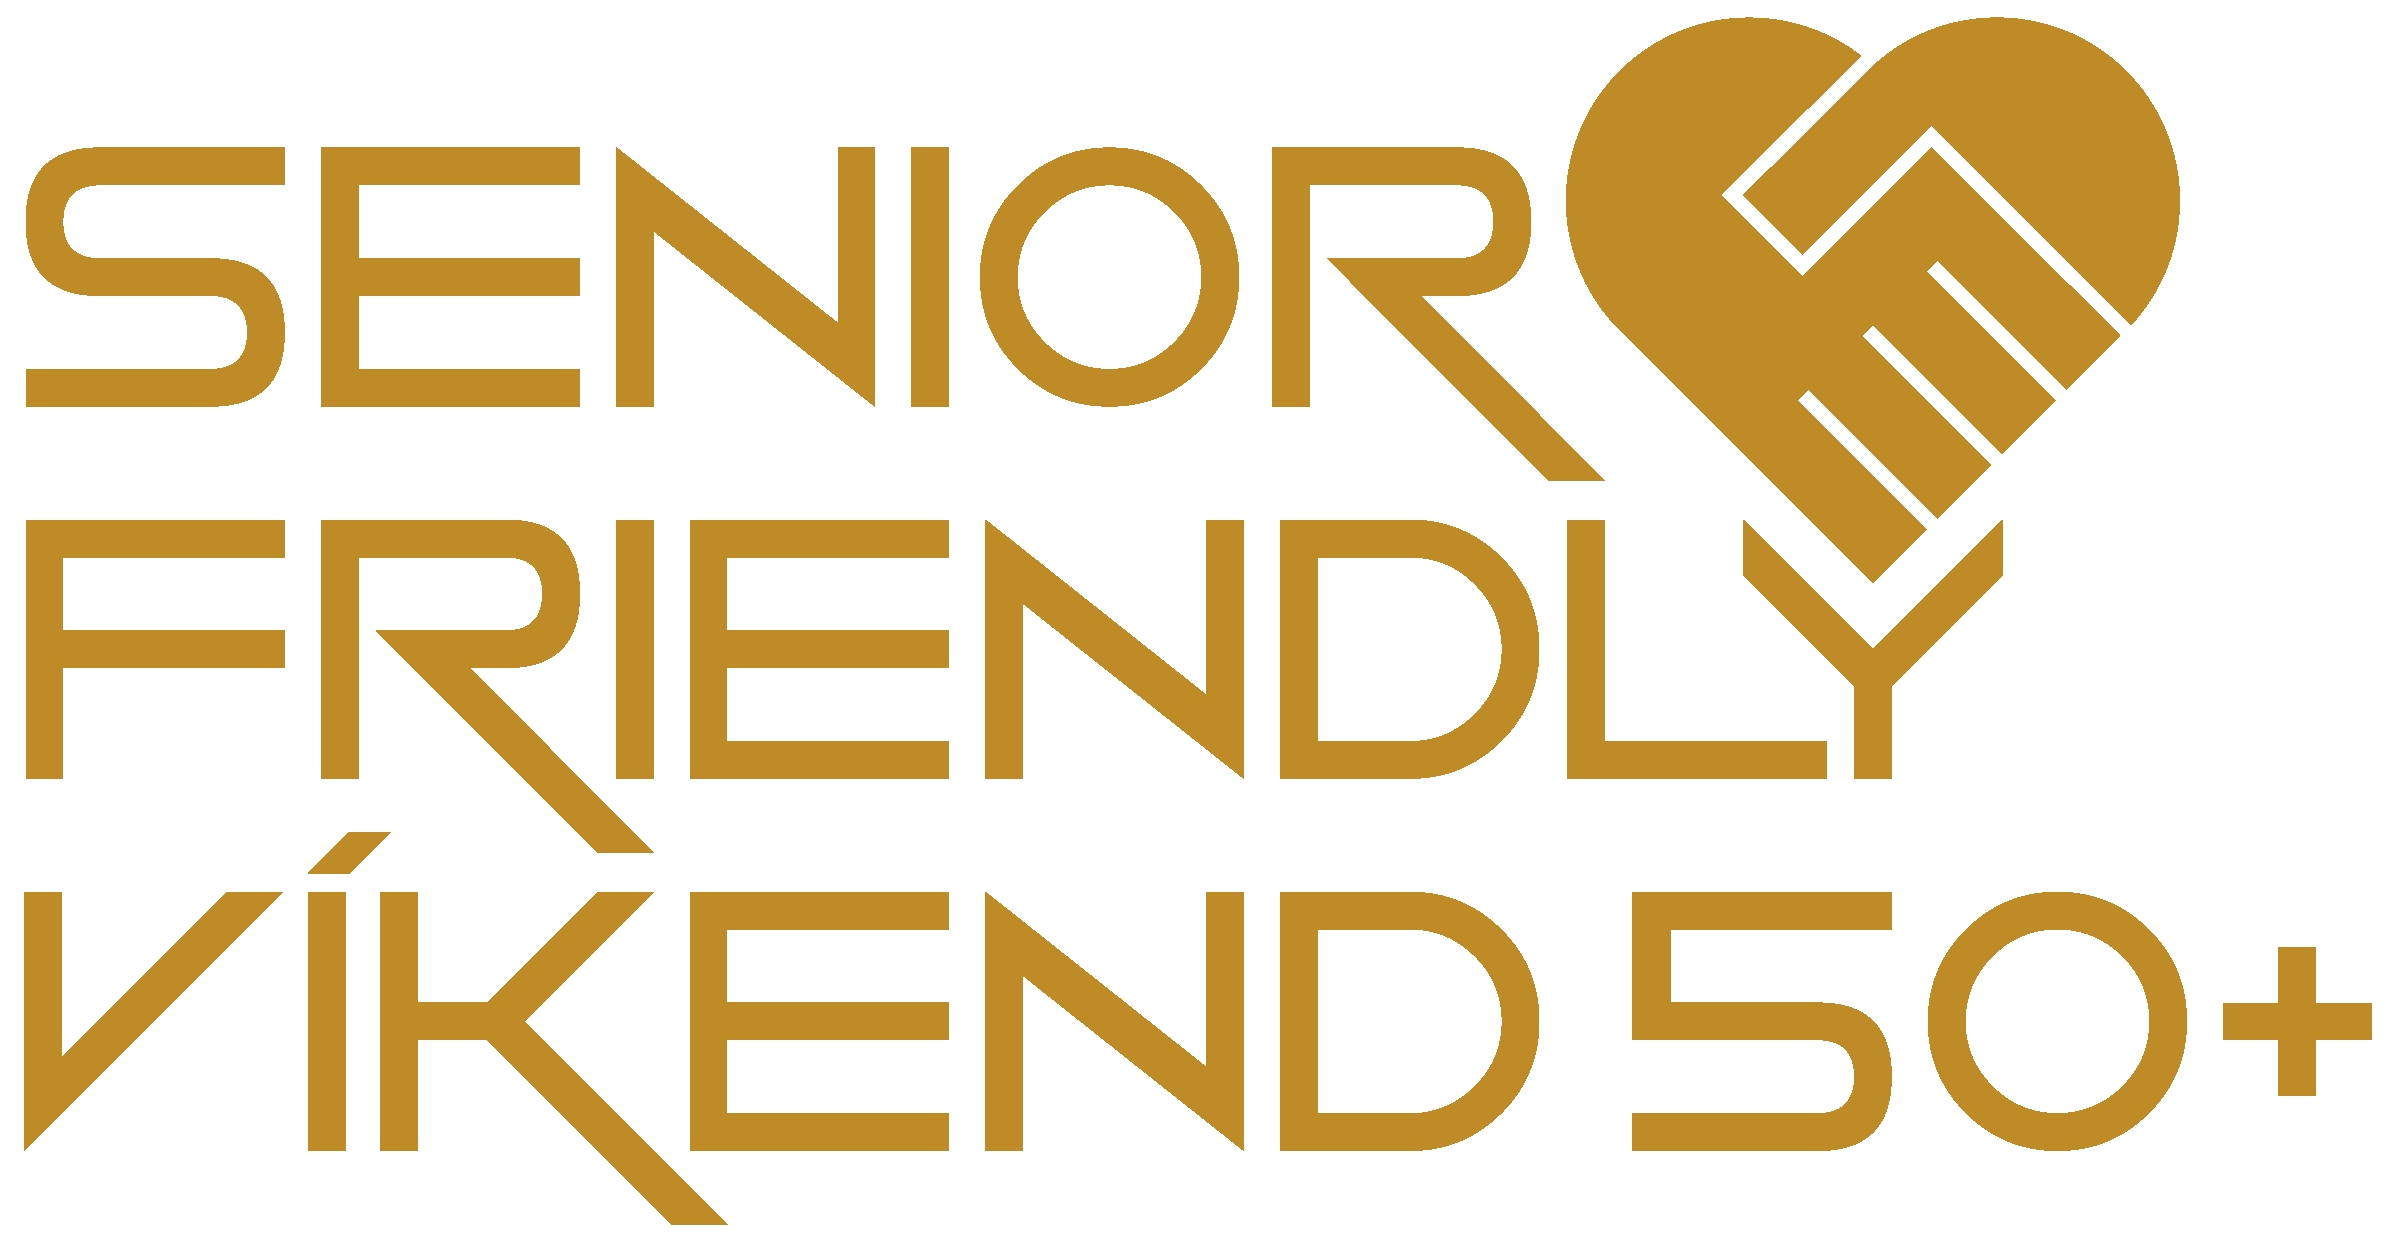 SENIOR FRIENDLY VÍKEND 50+ 2017